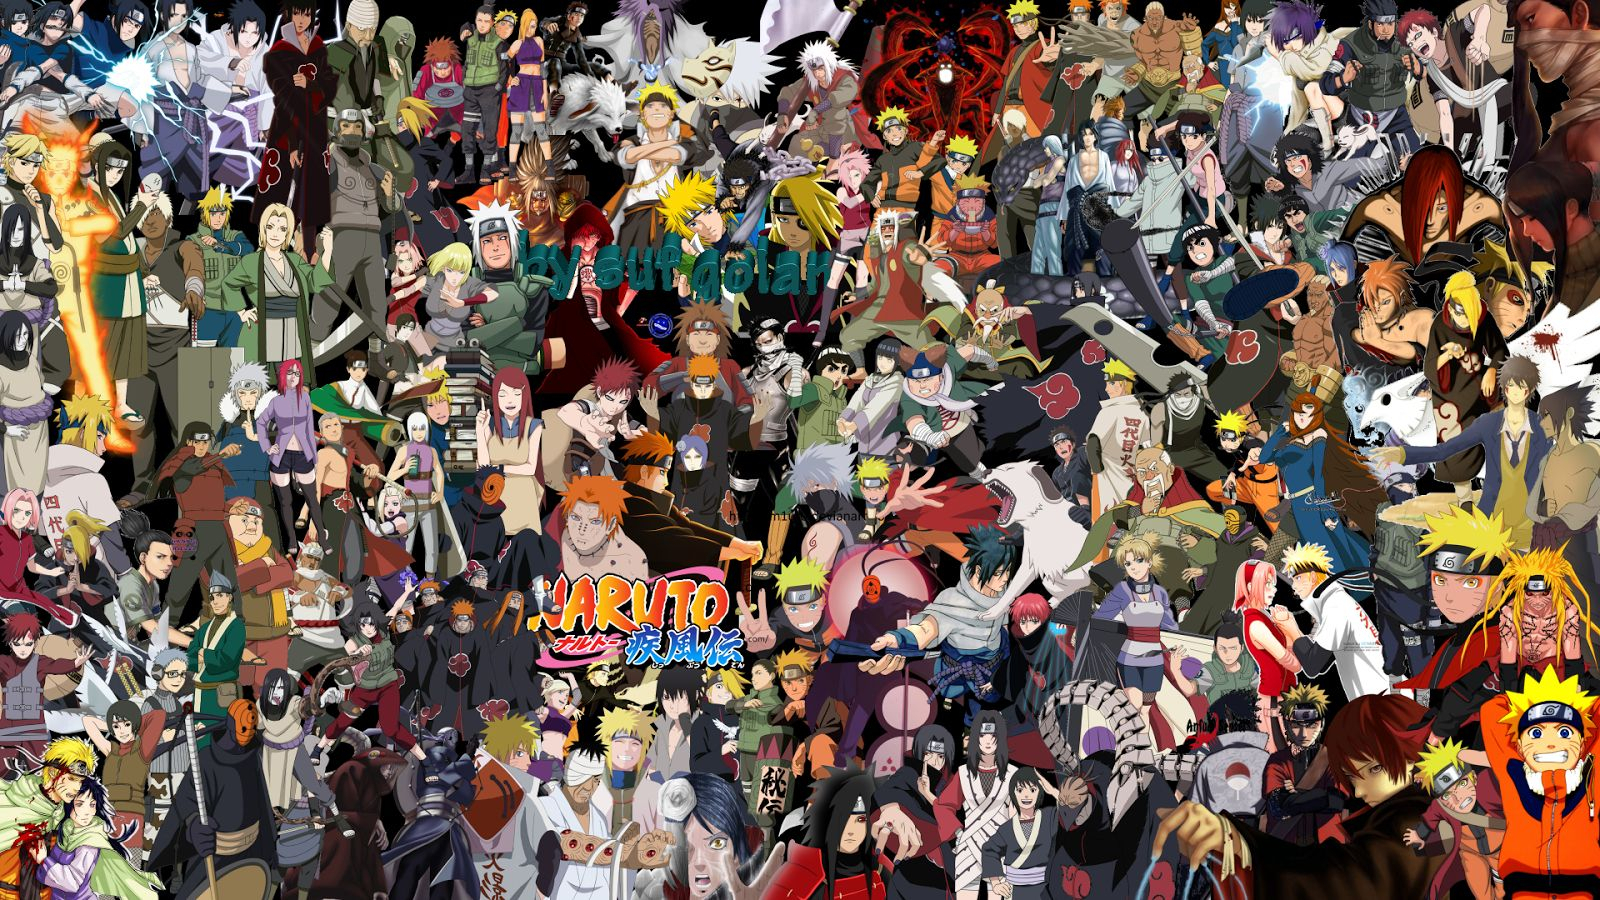 naruto shippuden all characters wallpapers - wallpaper cave